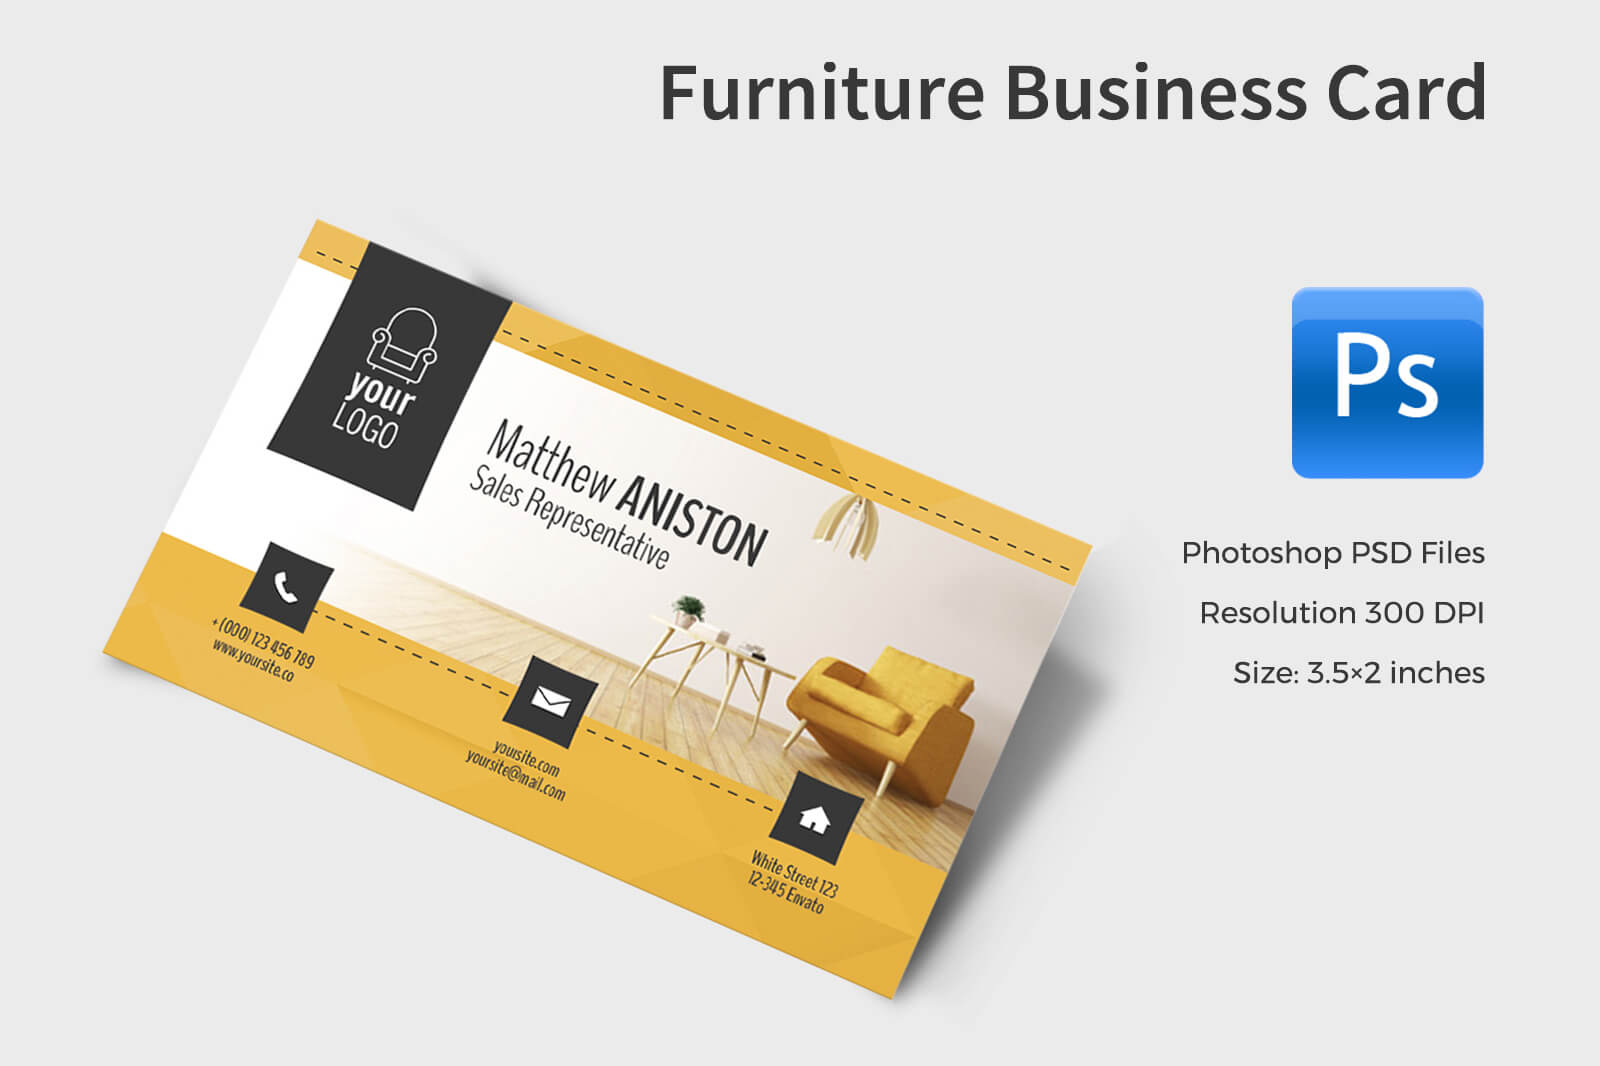 Furniture Business Card In Business Card Templates On Within Business Card Template Size Photoshop